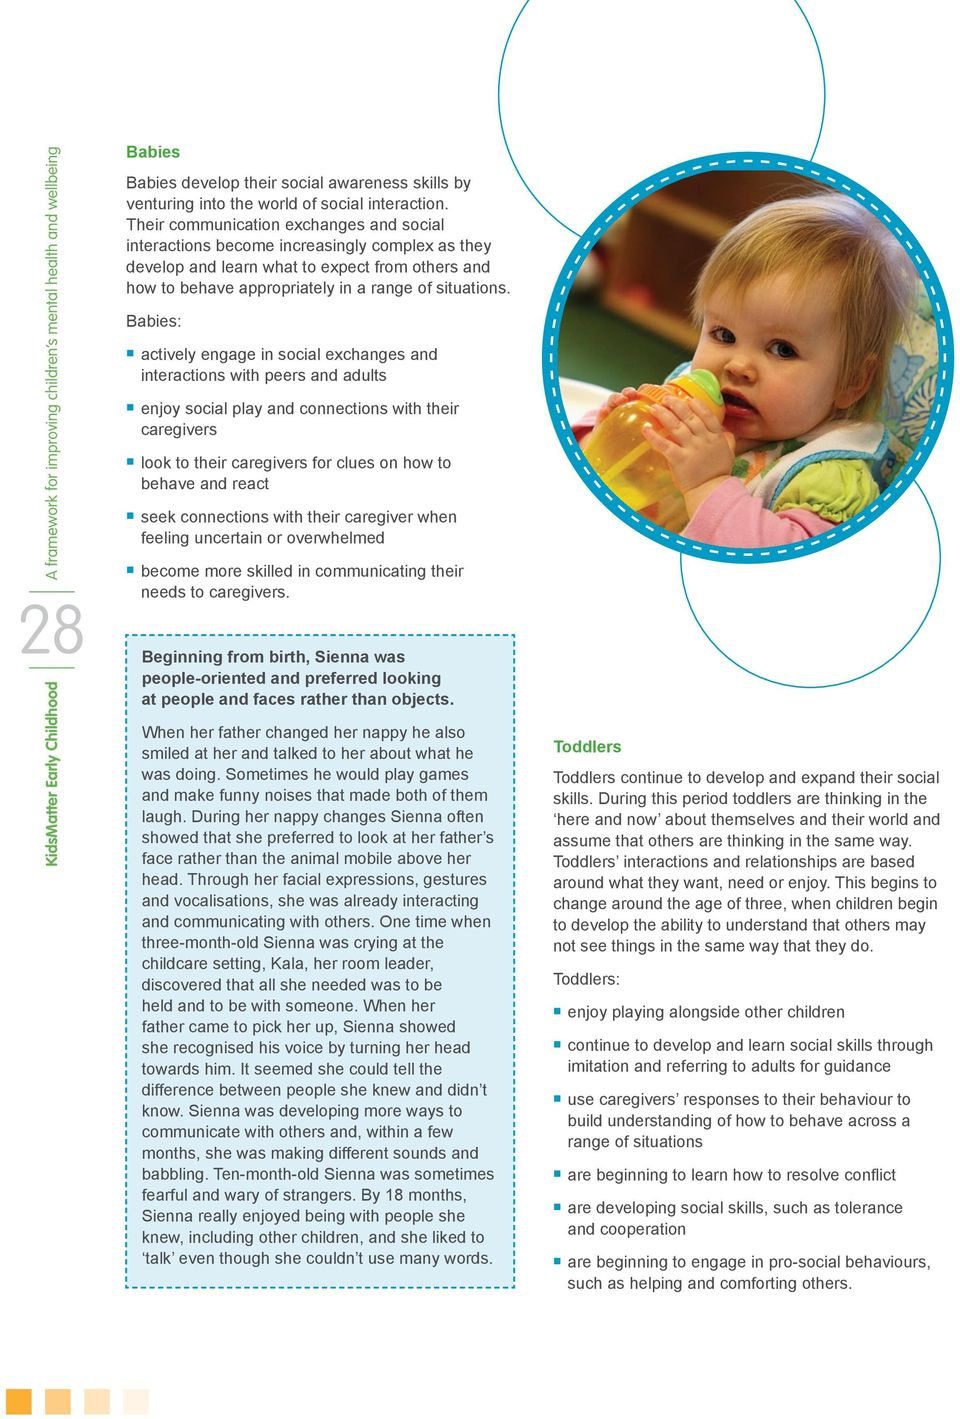 Babies: actively engage in social exchanges and interactions with peers and adults enjoy social play and connections with their caregivers look to their caregivers for clues on how to behave and